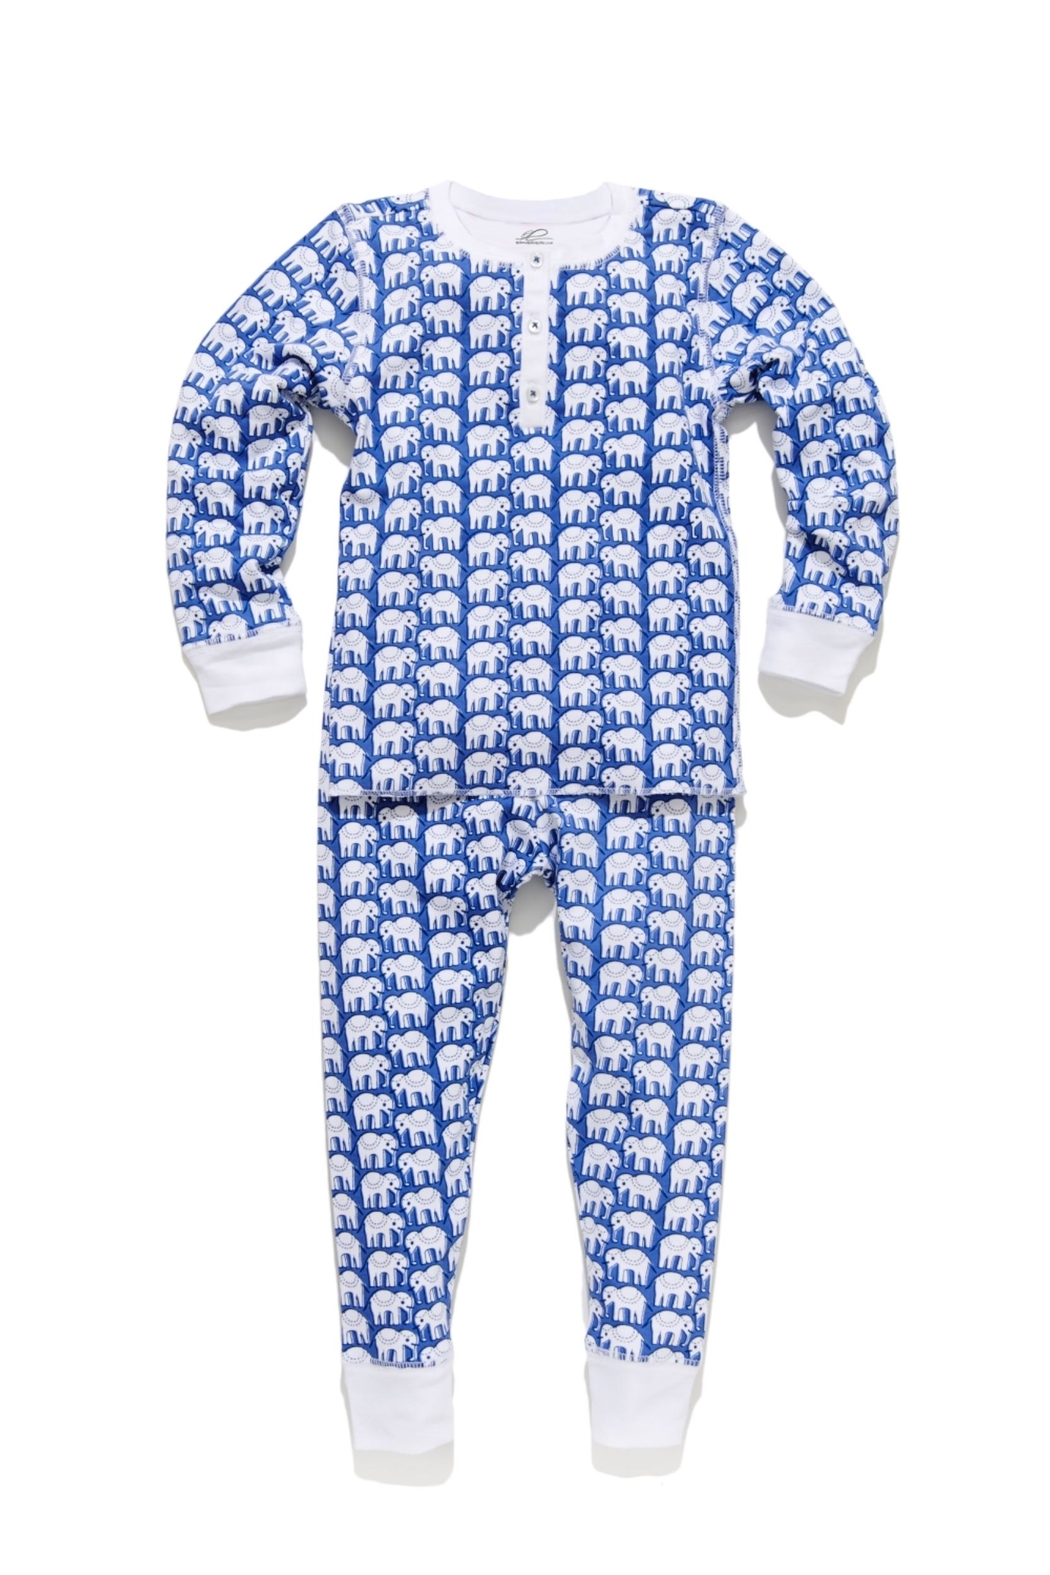 Roberta Roller Rabbit Elephant Kids Pj-Set-Blue - Main Image